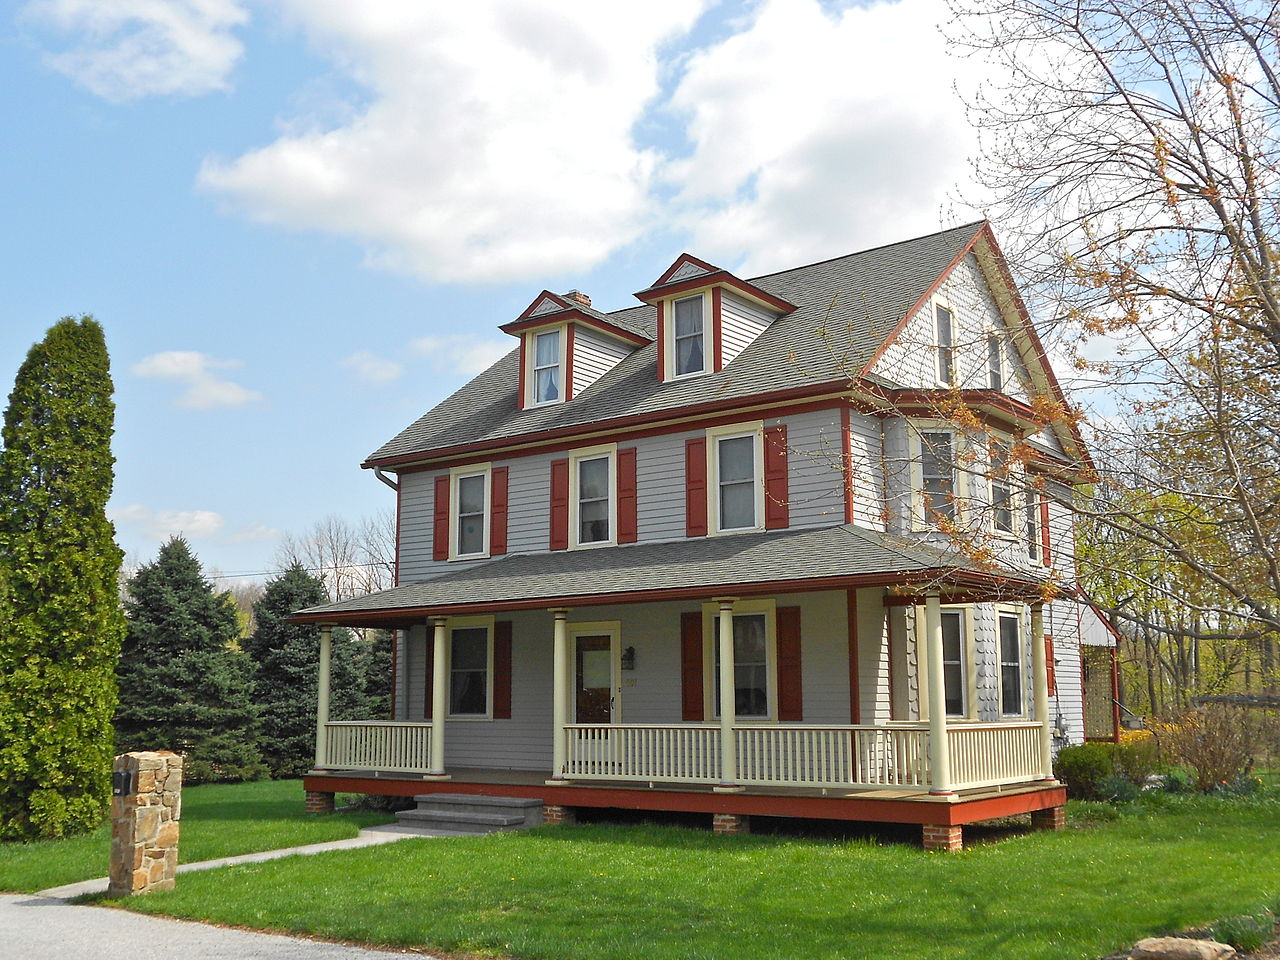 Avondale, PA Roofing Contractor Services